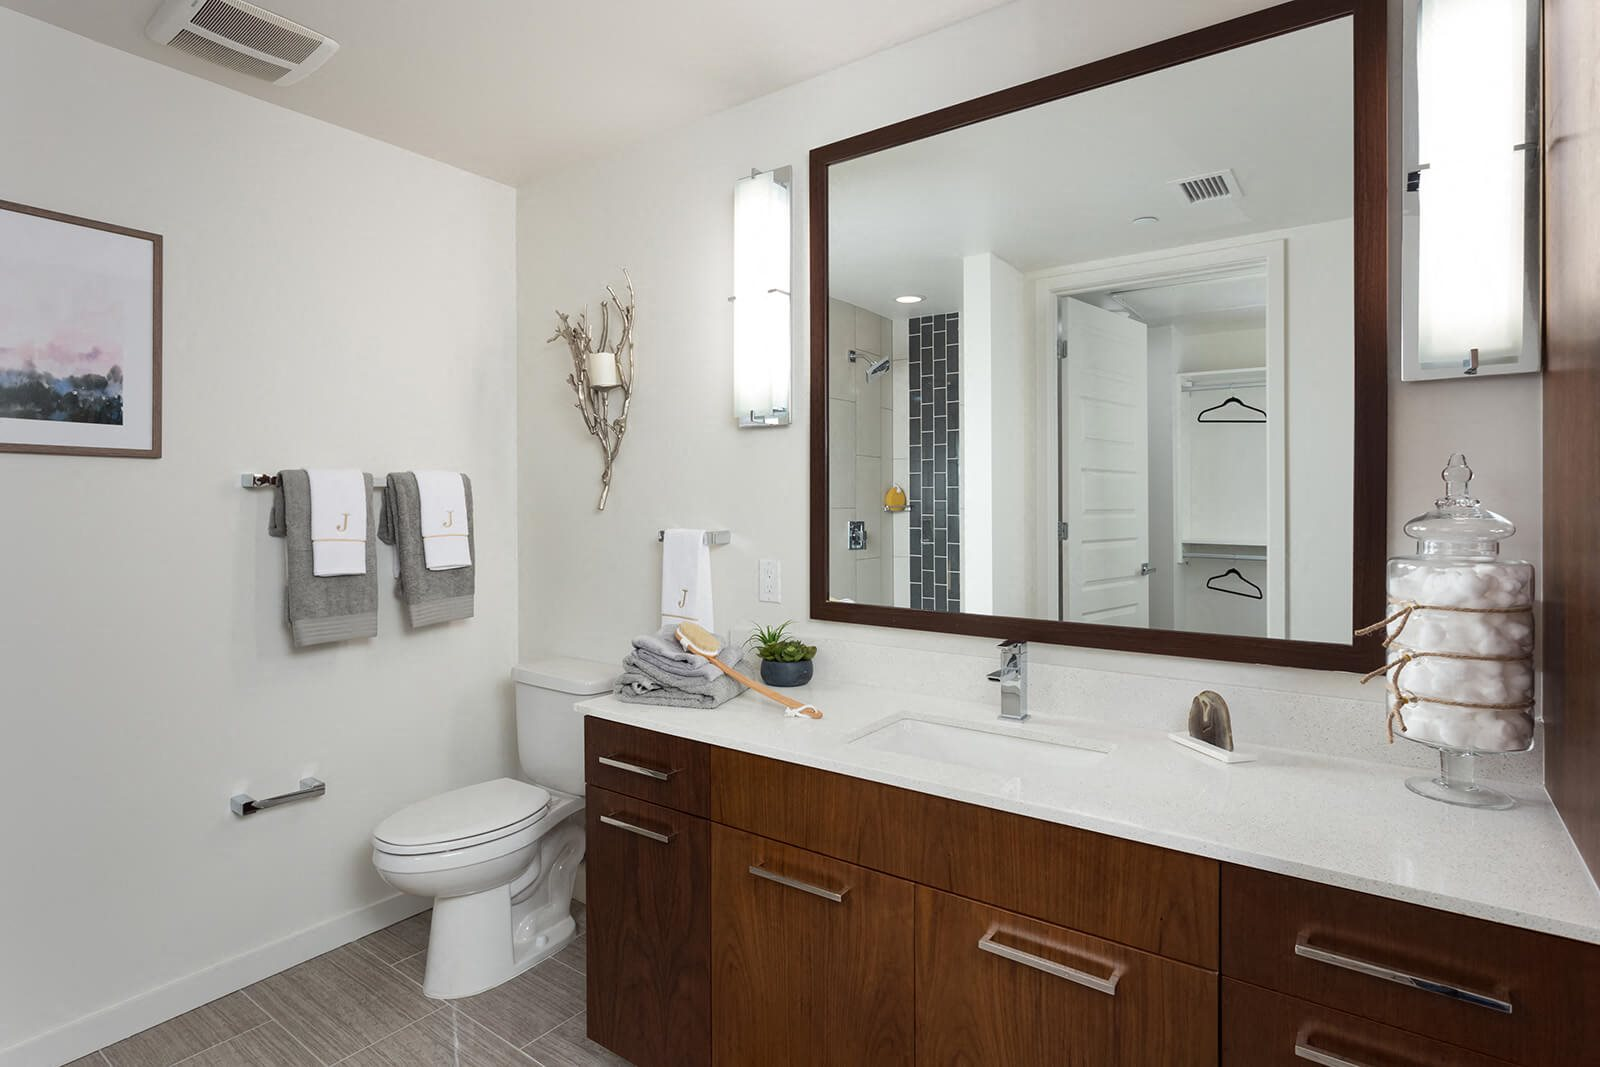 Spa-Inspired Bathrooms at 1000 Speer by Windsor, Denver, CO